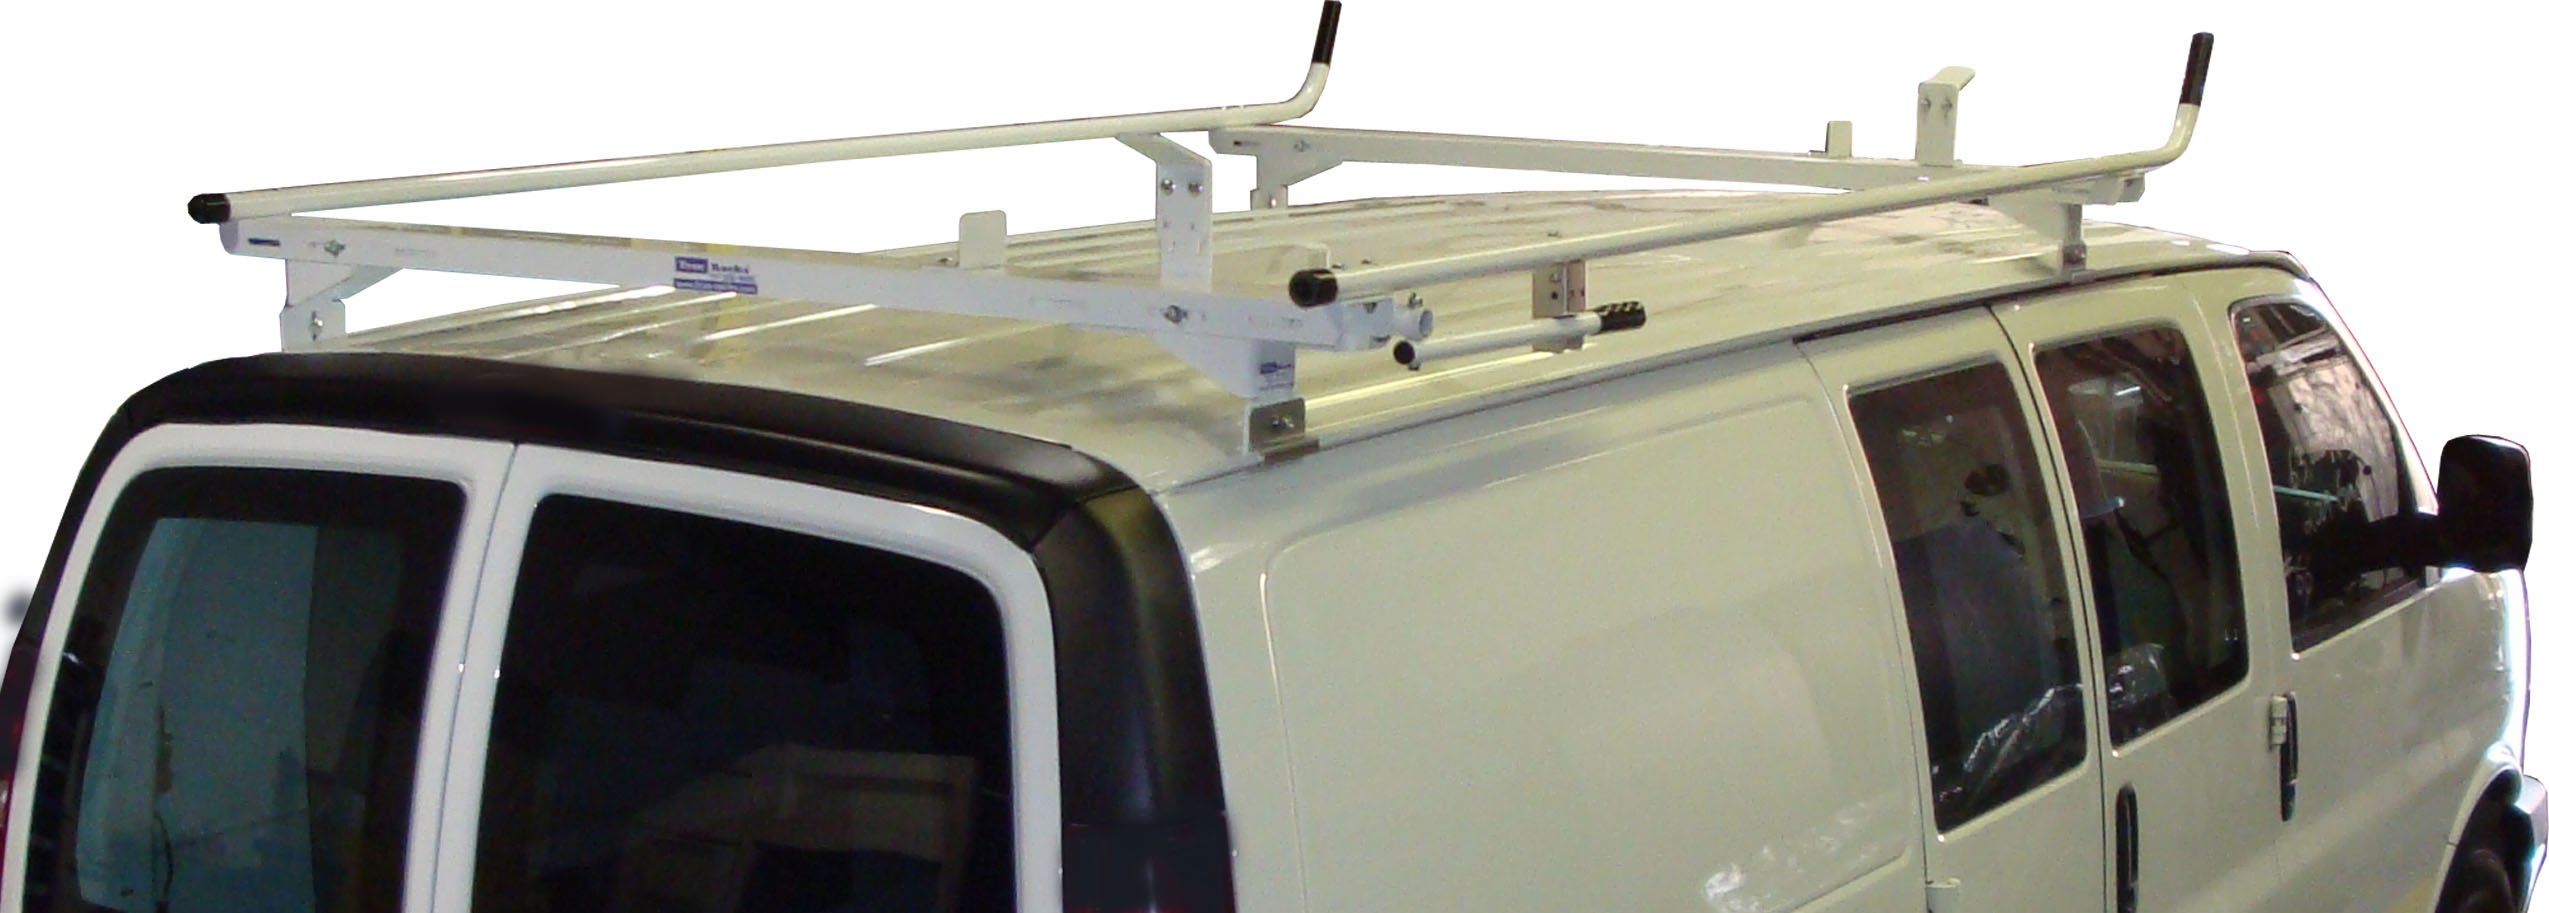 Aluminum Van Ladder Rack - Ford Econoline - Single Lock Down by True Racks (Image #2)